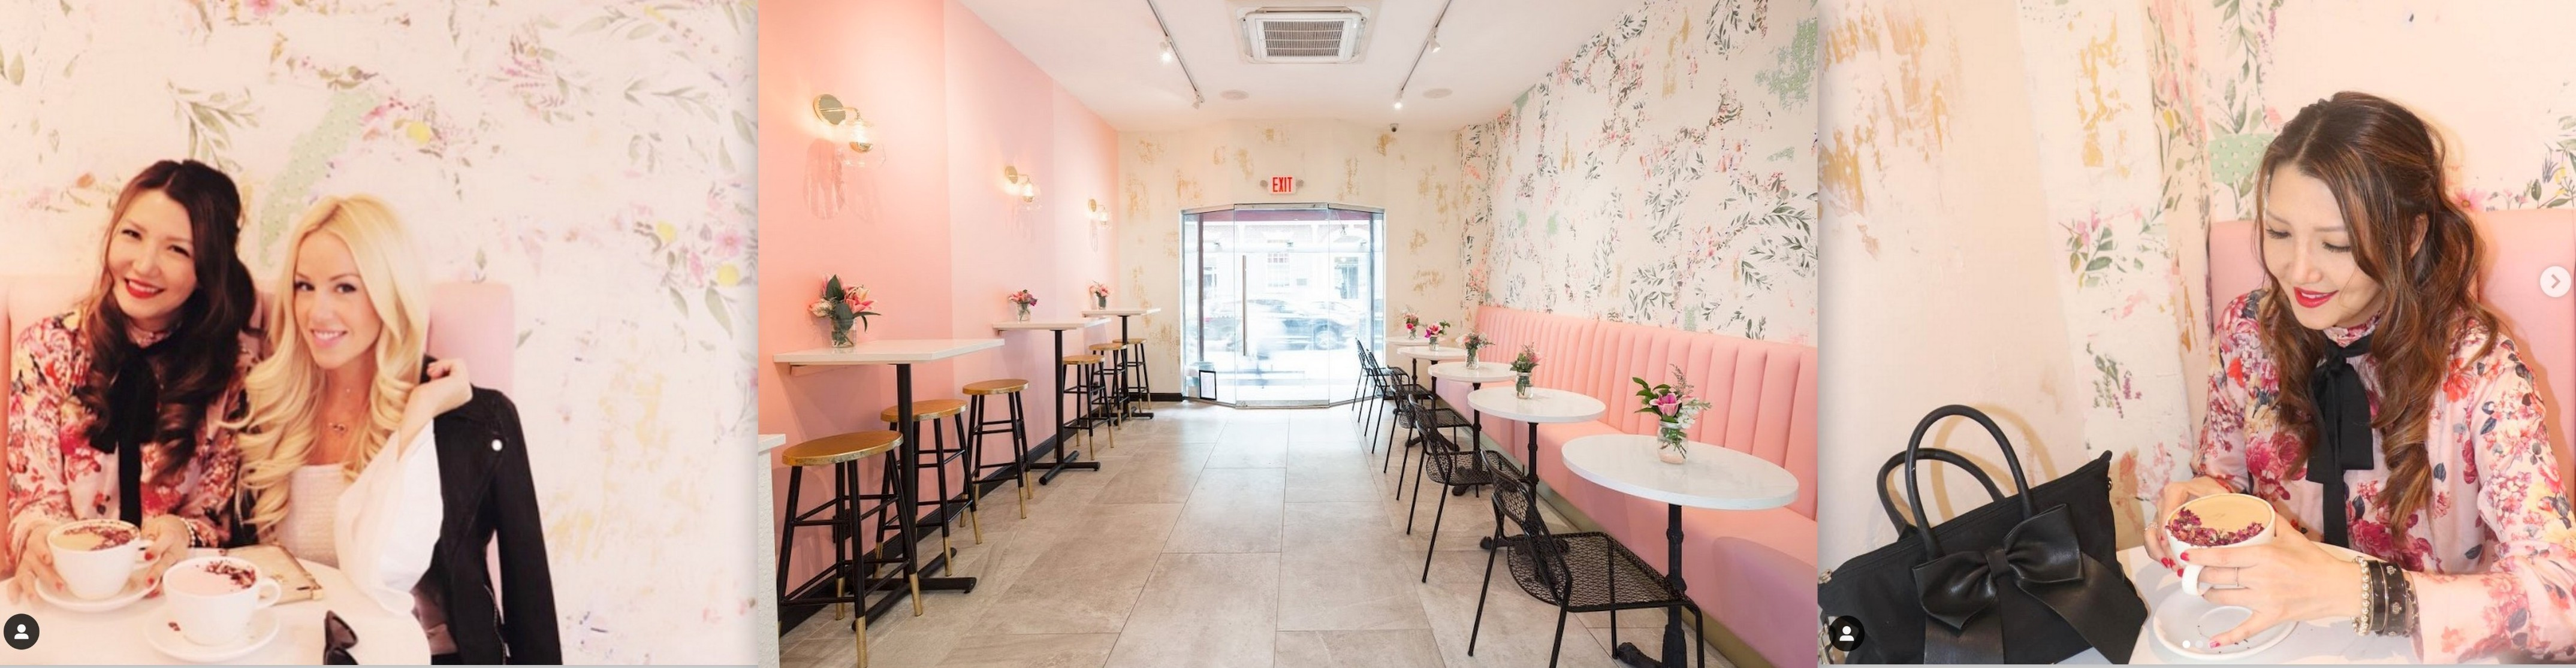 best nyc cafes, instagramable nyc, instagramable nyc cafes, instaworthy nyc, pink nyc restaurant